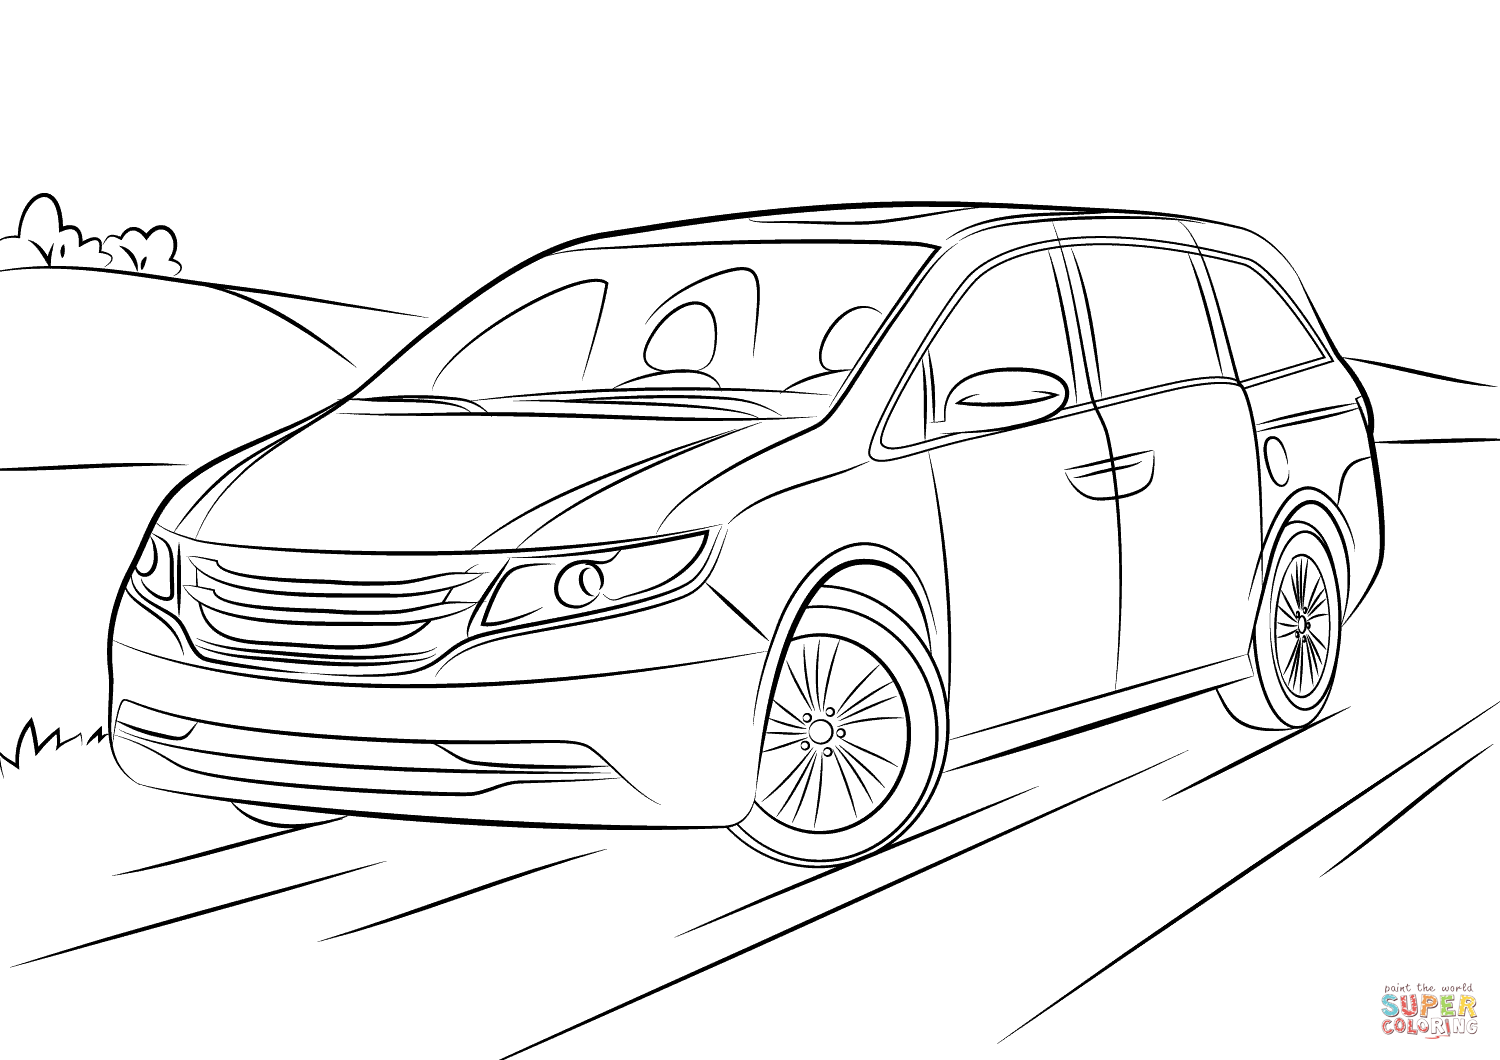 Honda Odyssey Coloring Page Free Printable Coloring Pages